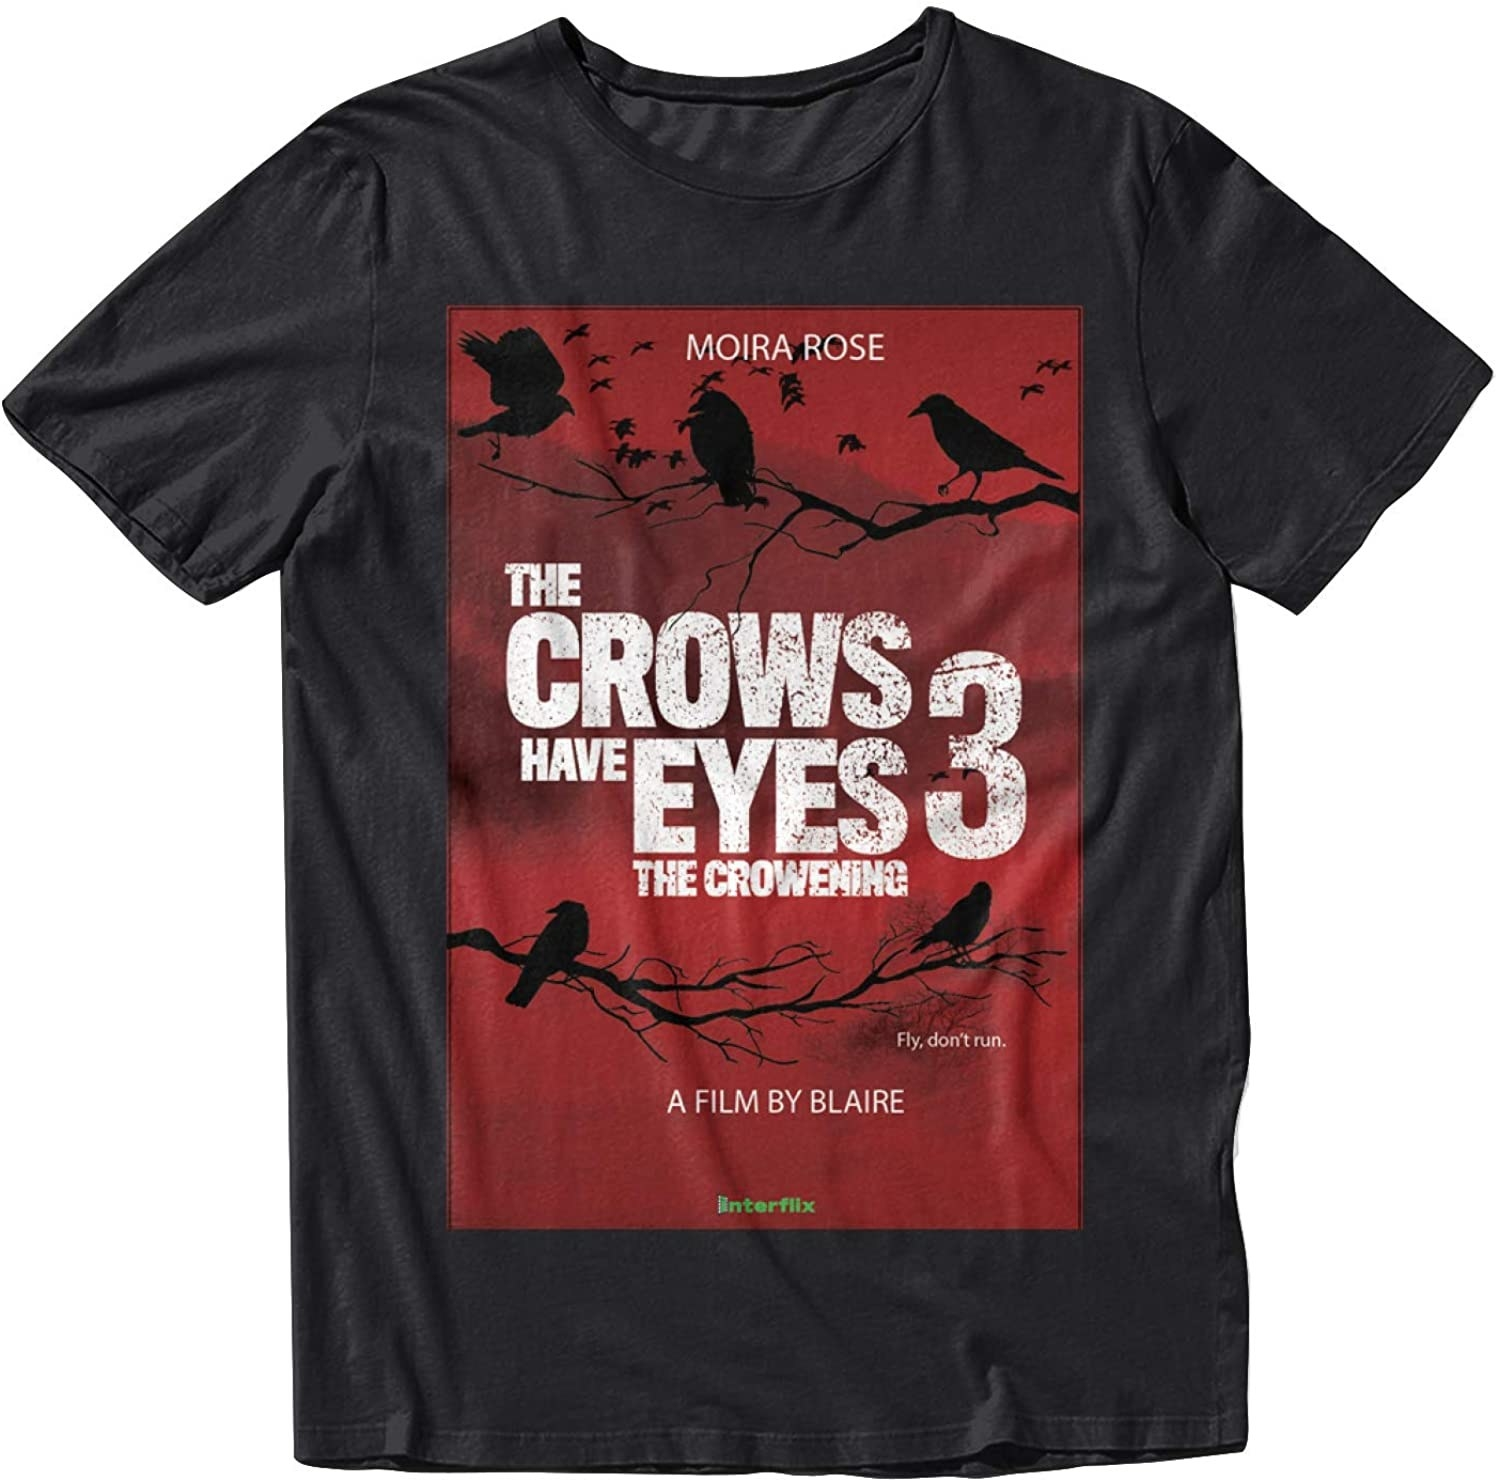 The black and red short sleeve tee with a poster for the movie featuring crows, an Interflix logo, and Moira Rose's name